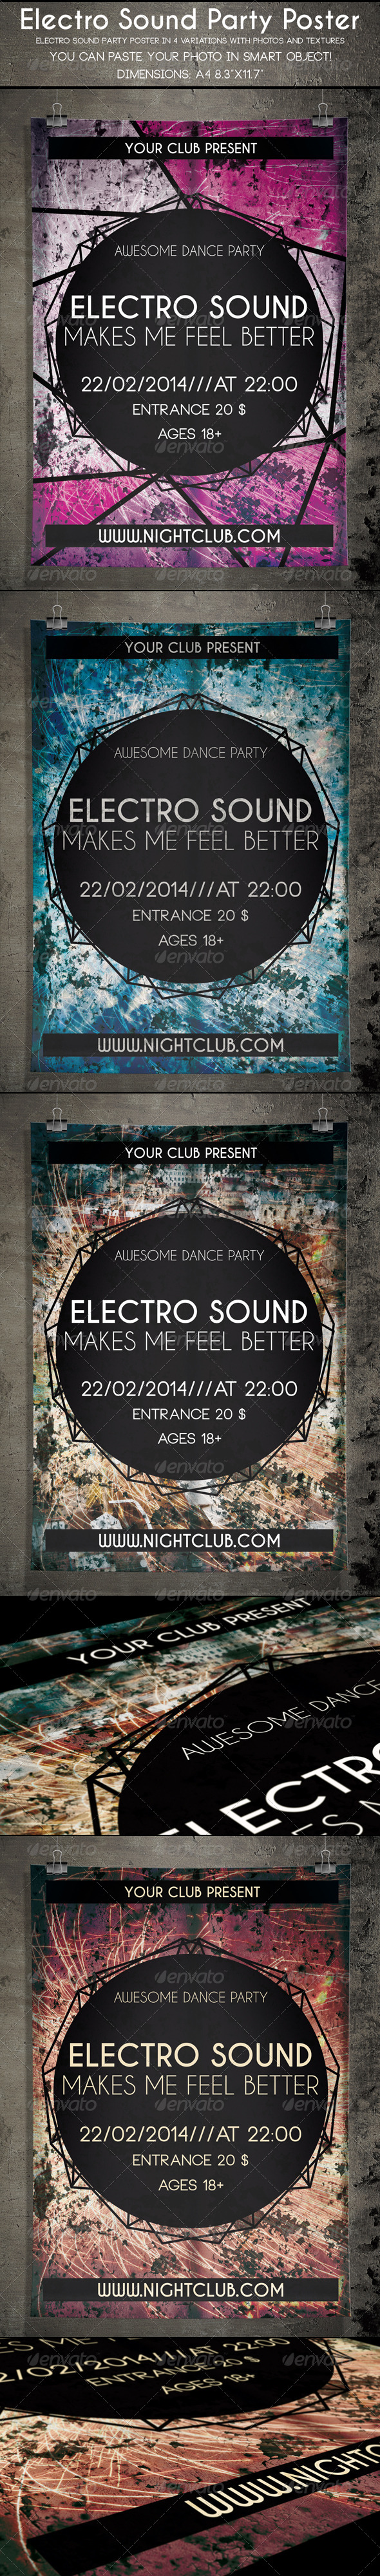 Electro Sound Party Poster - Clubs & Parties Events